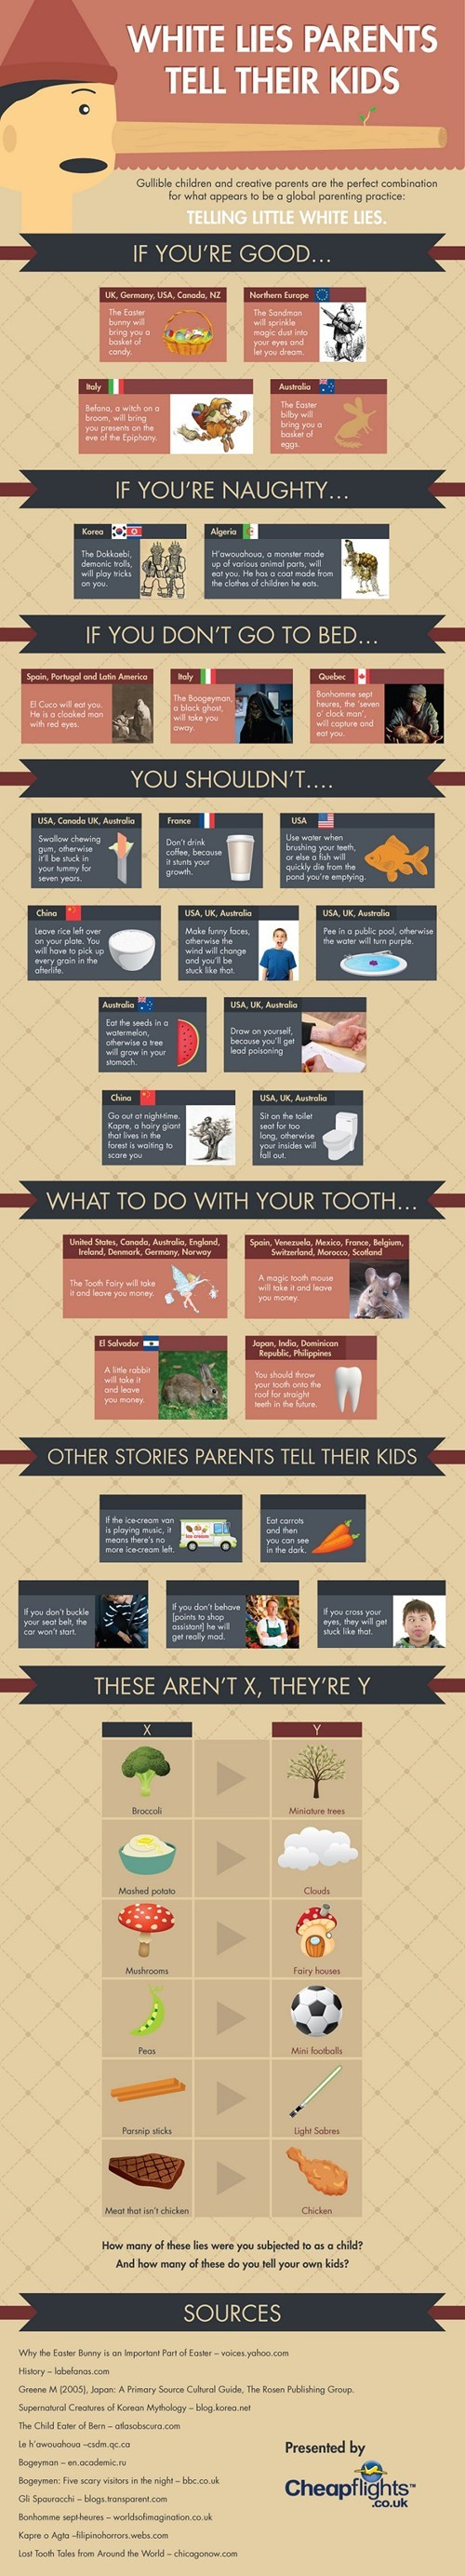 infographic,lies,parenting